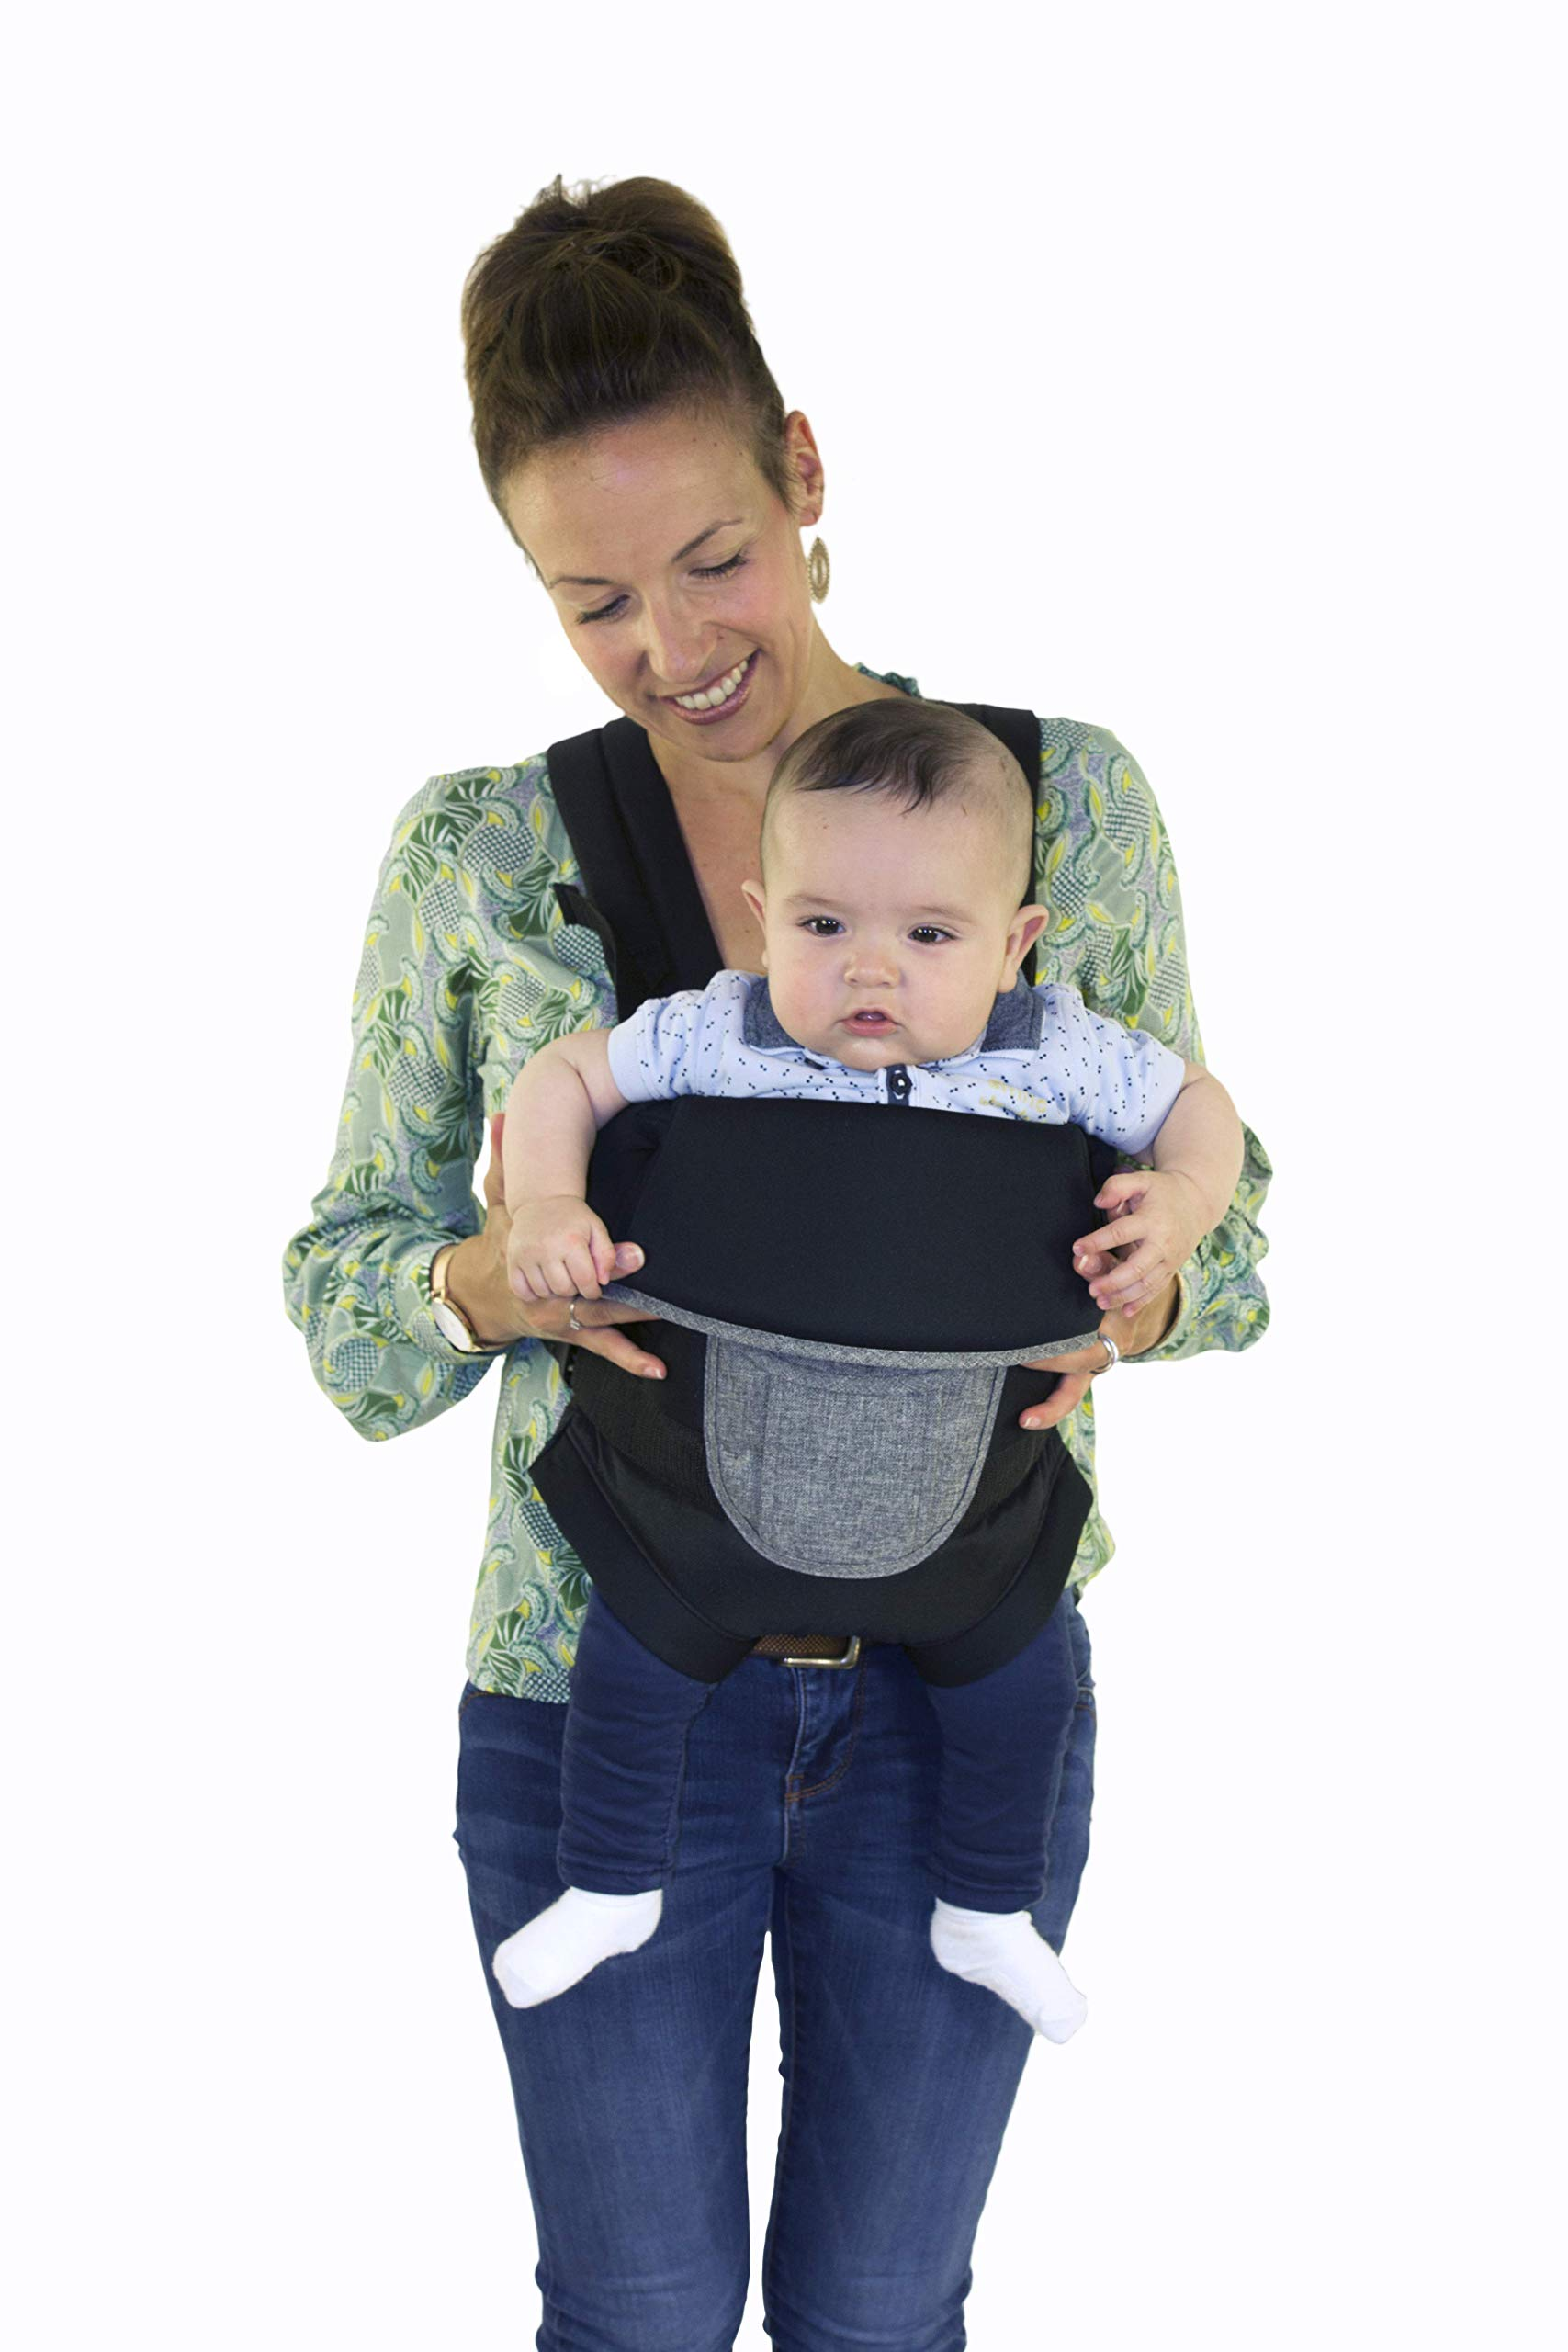 Safety 1st Youmi Baby Carrier, Black Chic Safety 1st 2 positions: parent facing and forward facing Comfortable and safe seat thanks to padding and reinforced back and head piece Safe and easy to install the baby thanks to the zippered opening 2